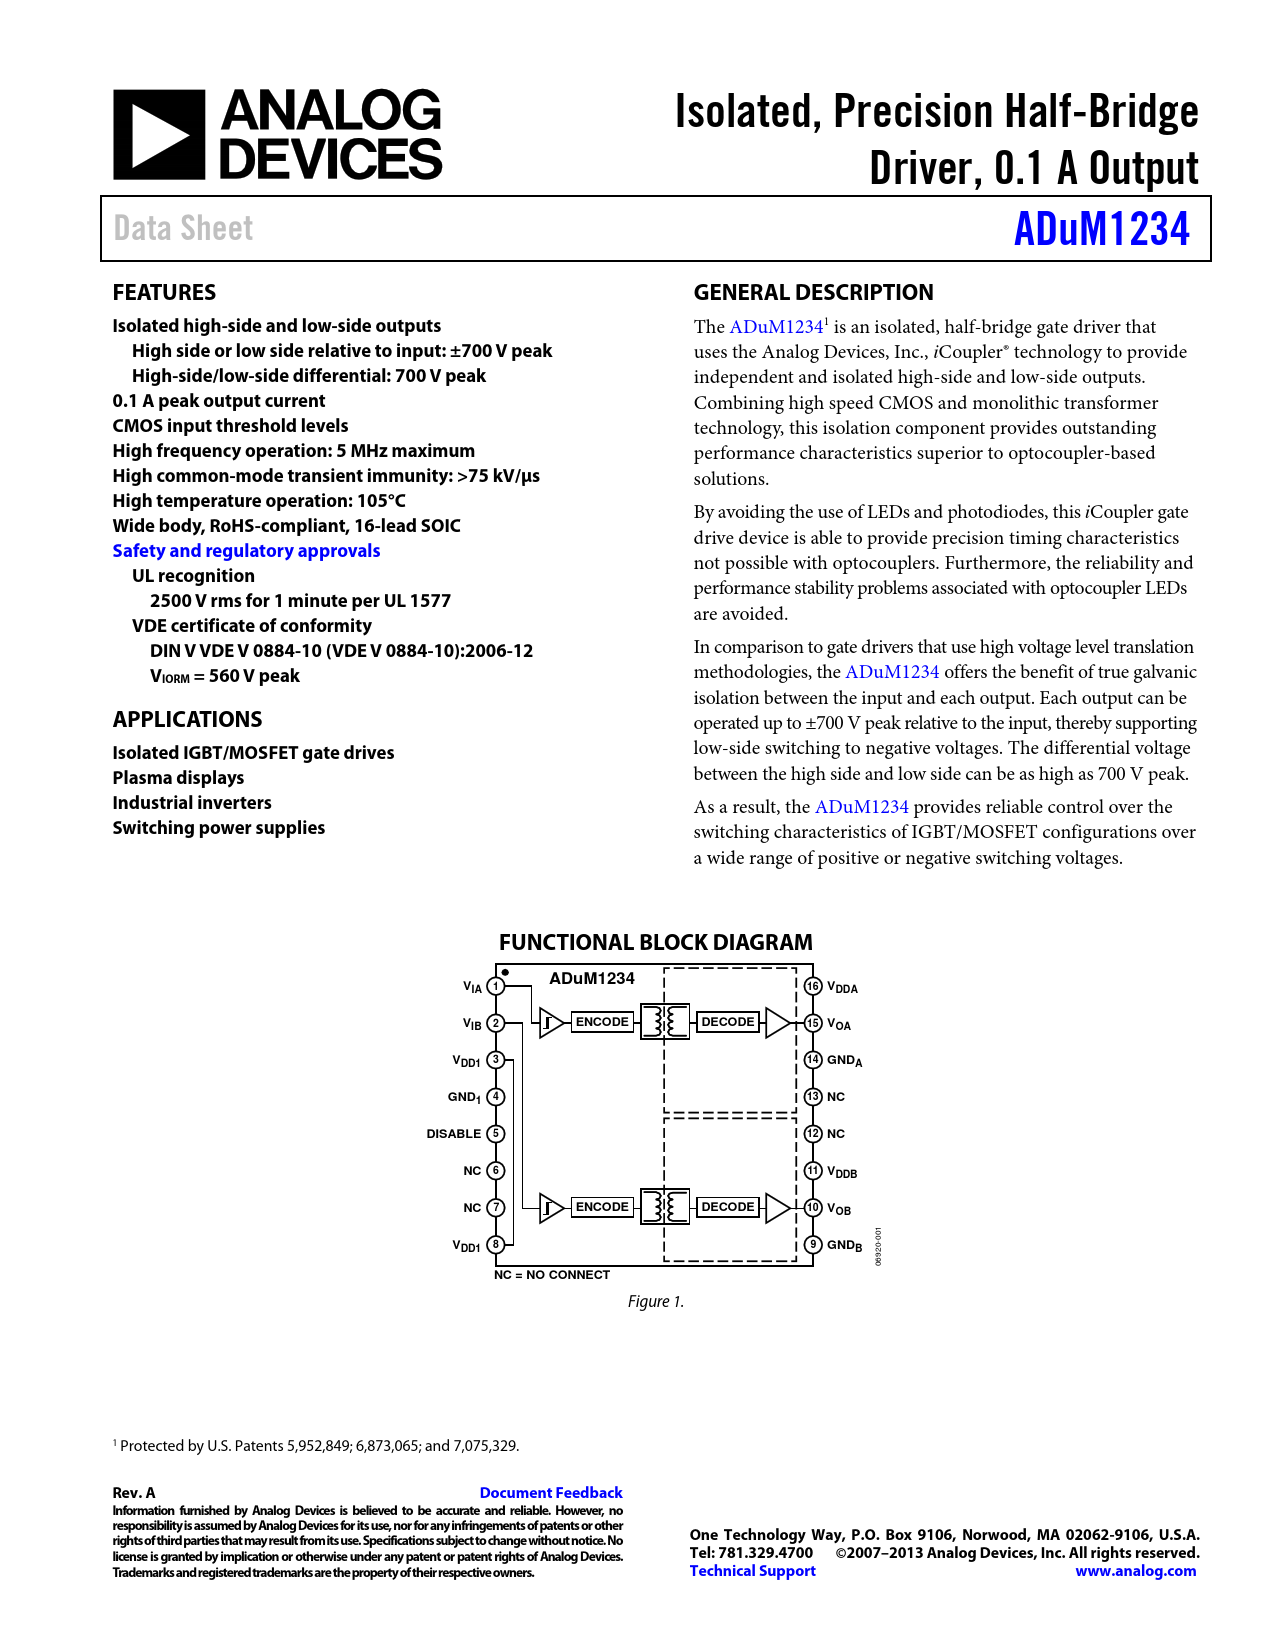 Datasheet ADUM1234 Analog Devices